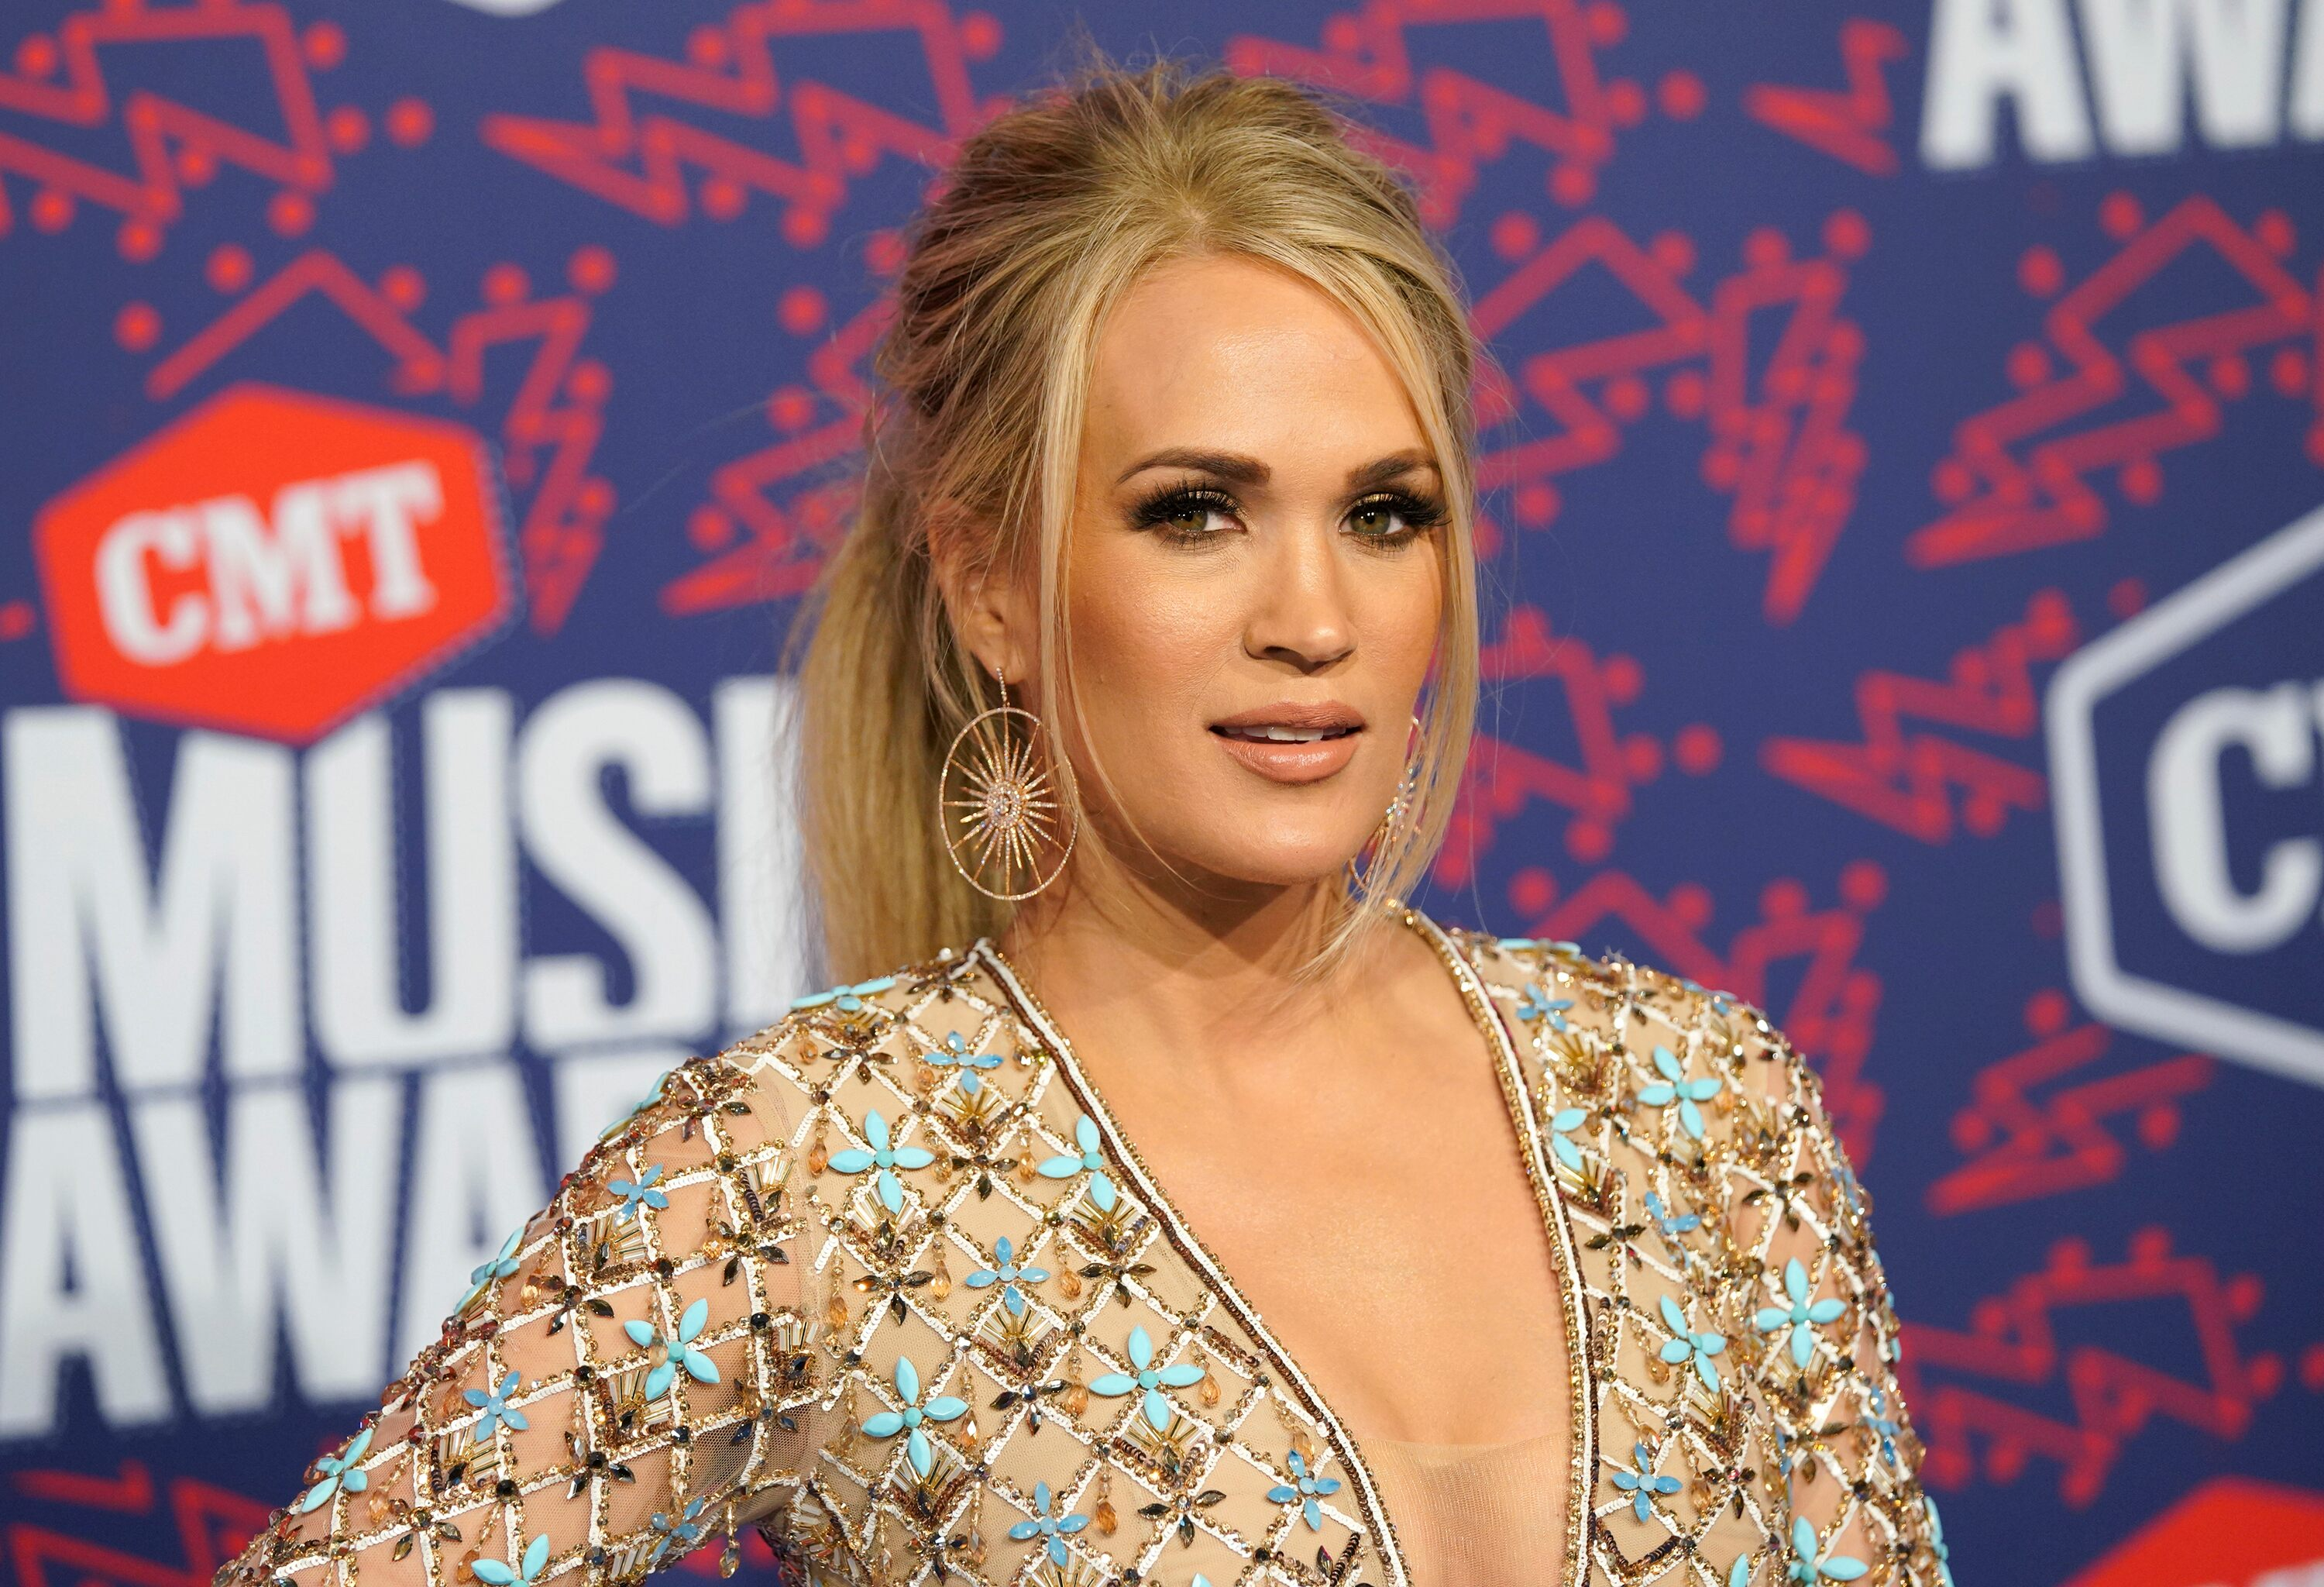 Carrie Underwood Reveals The One Condition She Has For An